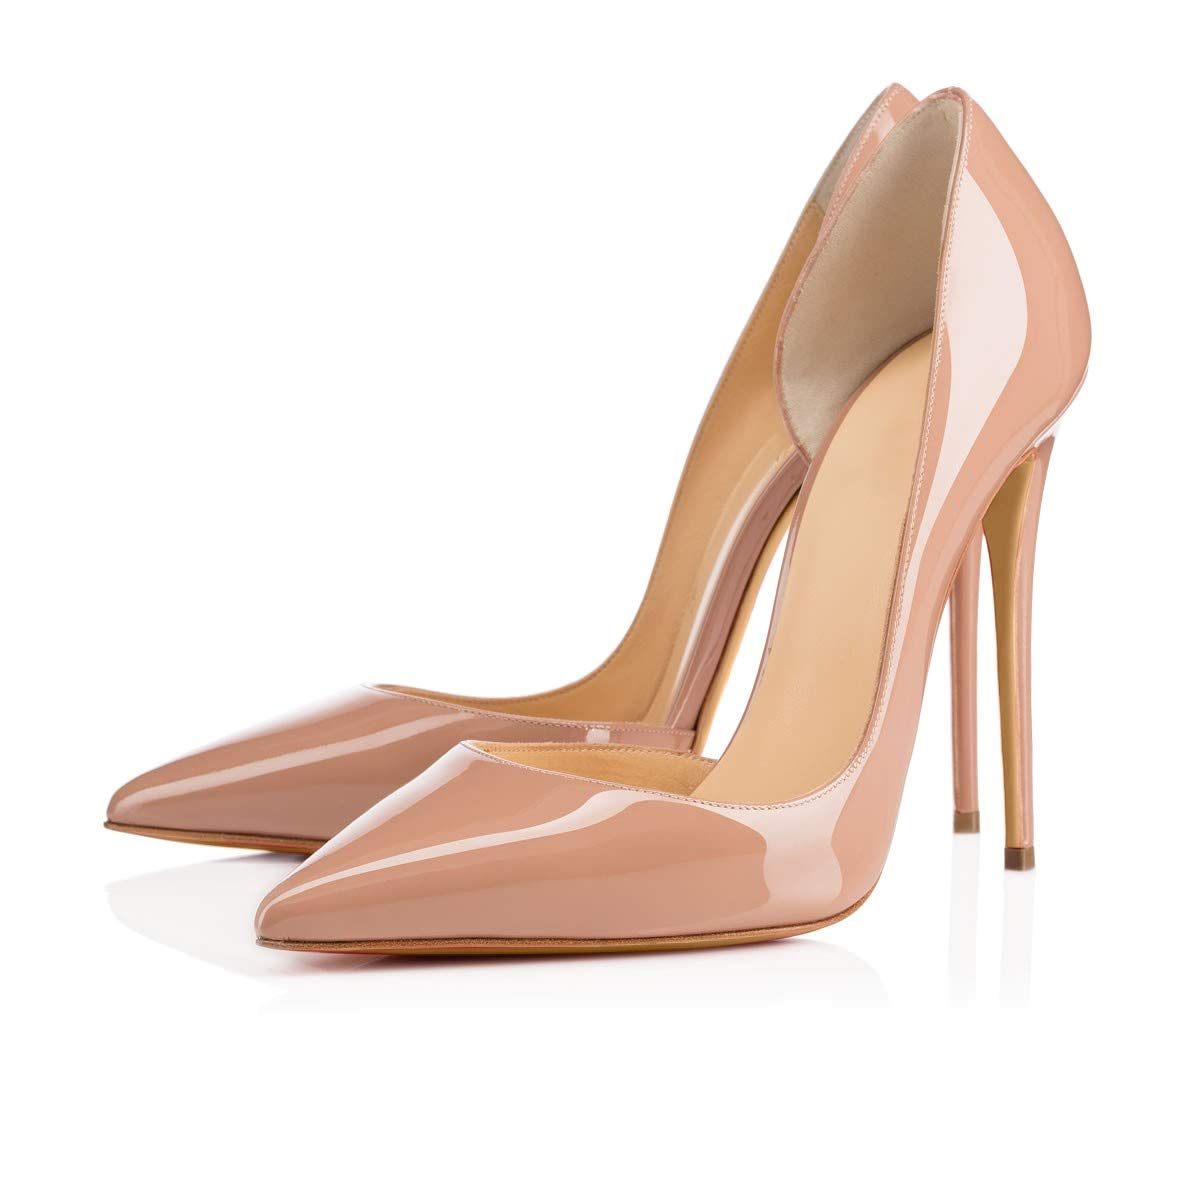 Beige side-12cm CAITLIN-PAN Womens 12cm High Heels Pointed Toe Slip On Stilettos Leather Party Dress Pumps Size 5-15 US